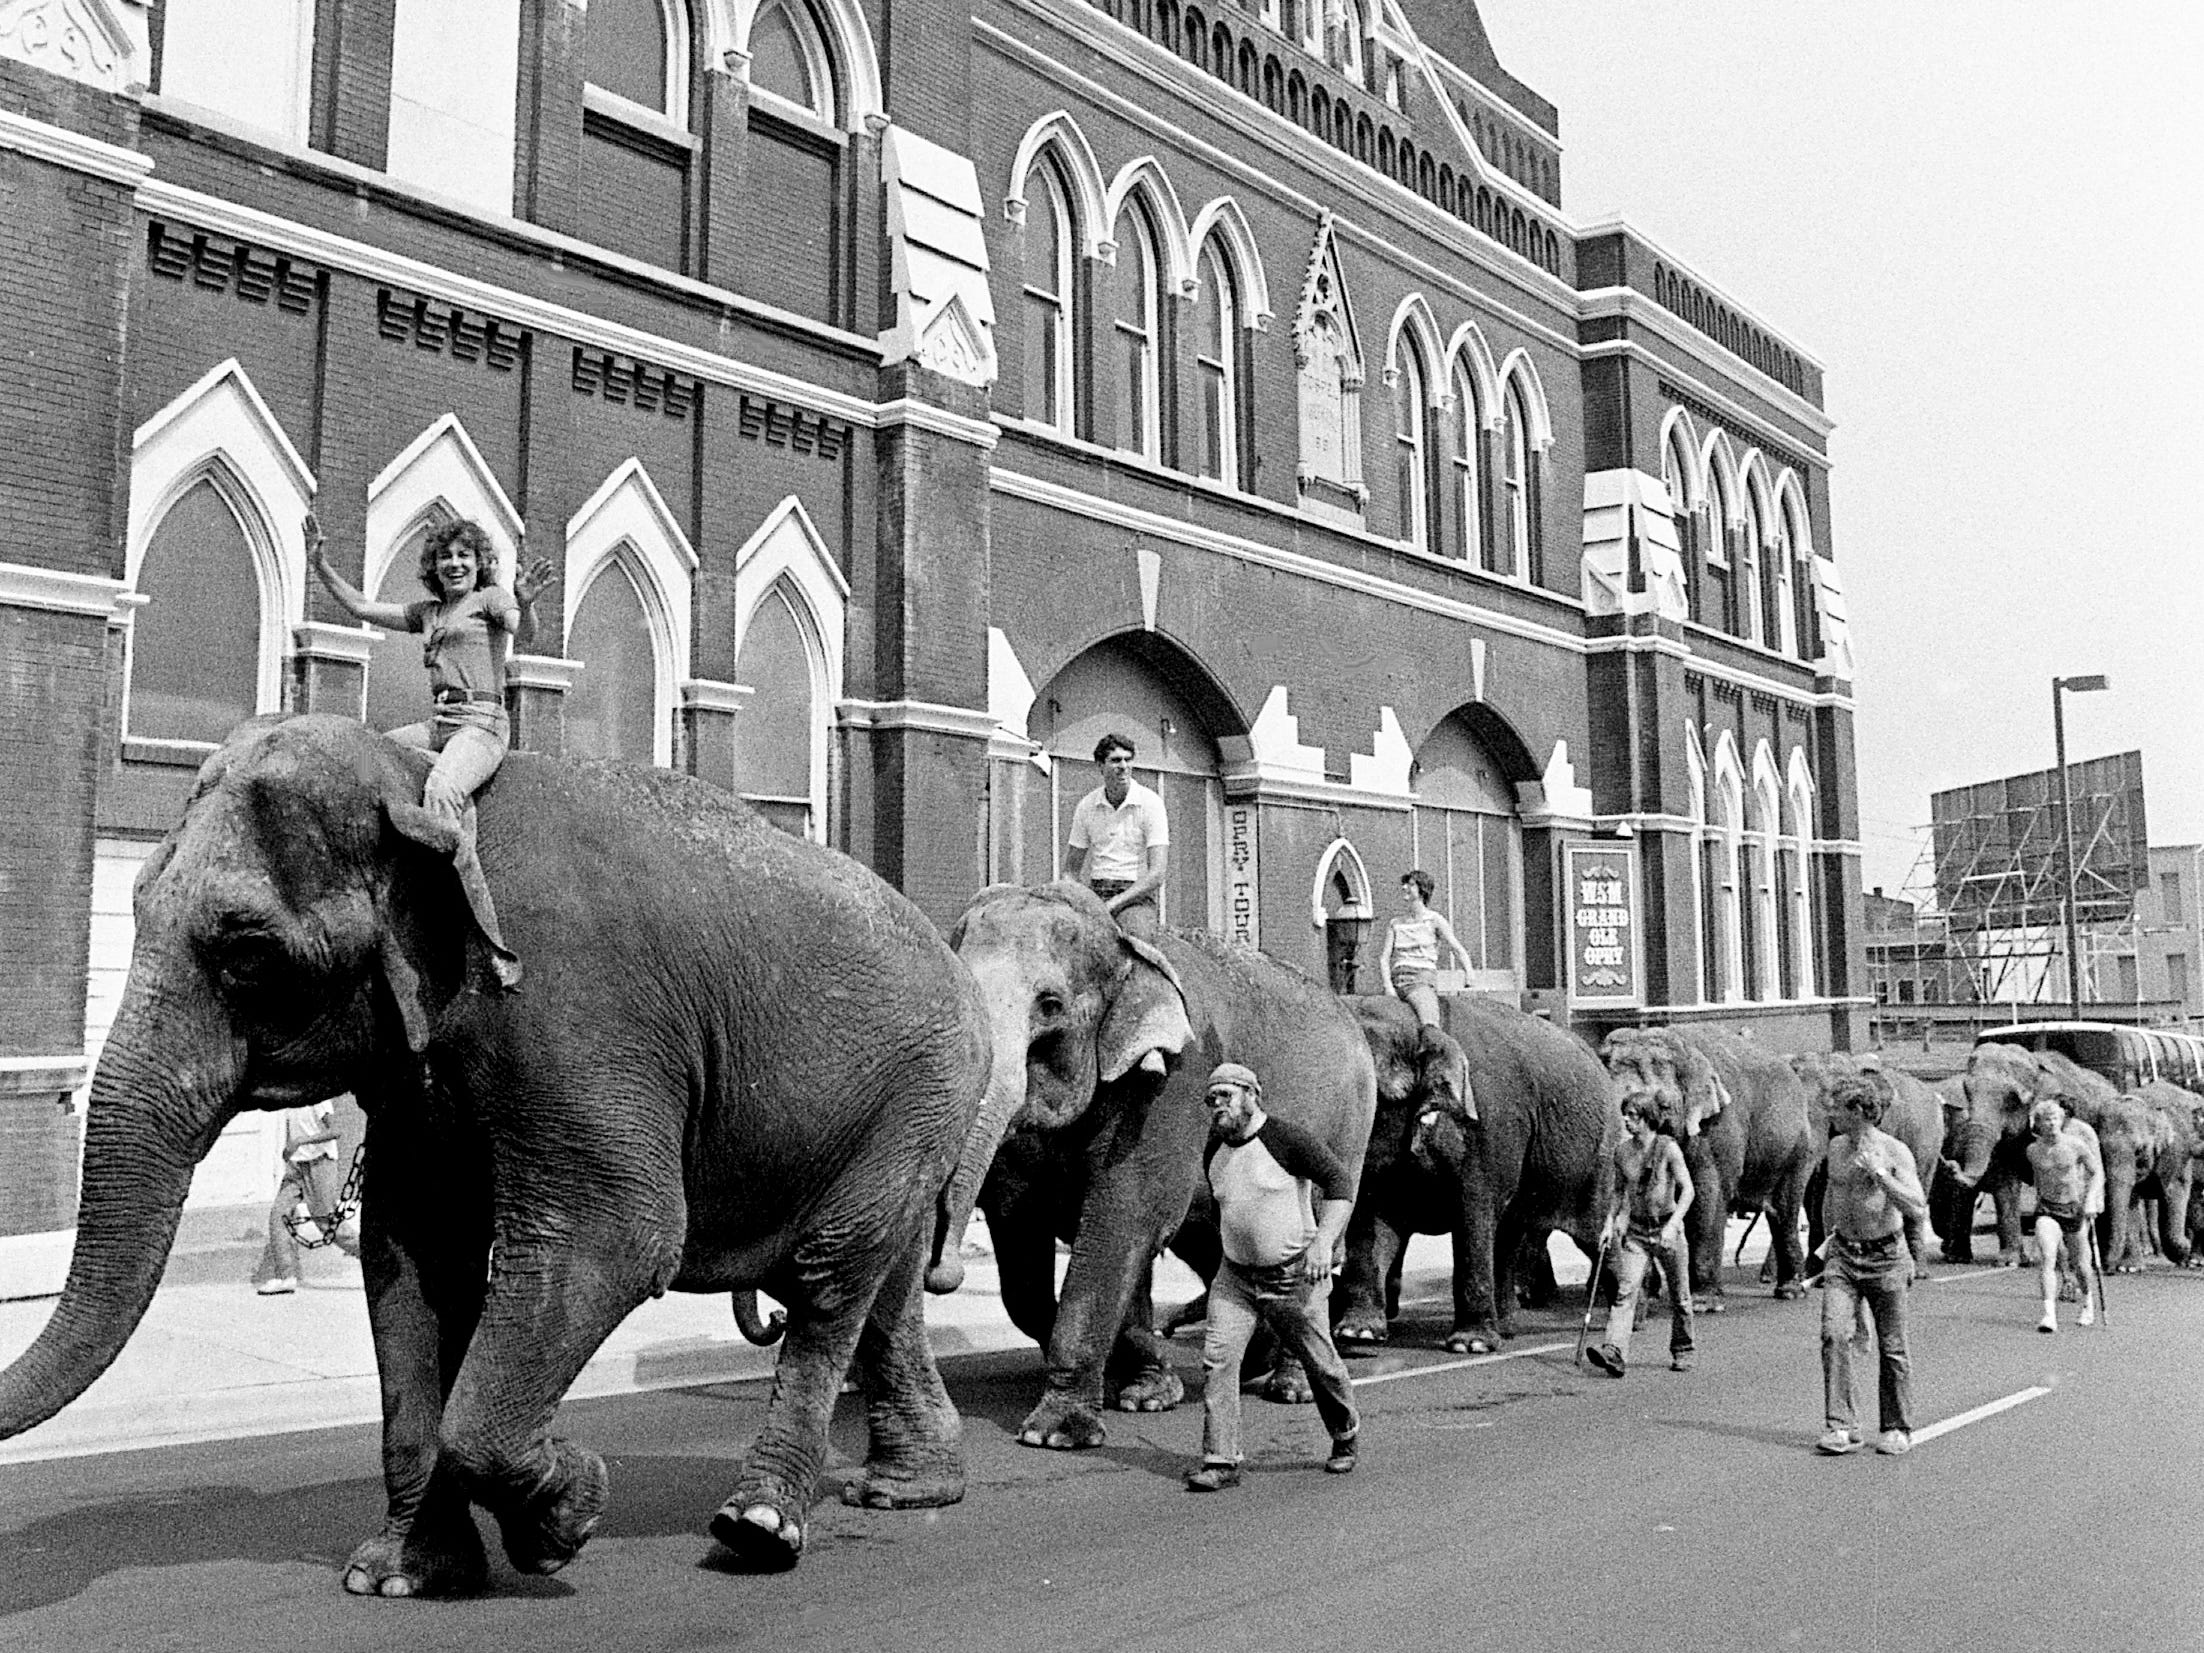 Tennessean music reporter Sandy Neese, front, takes the ride of her life on the back of Big Betty, the largest of 21 Asian elephants in the Ringling Bros. and Barnum & Bailey Circus. The group passes the Ryman Auditorium on June 20, 1983, to head to Municipal Auditorium for the upcoming circus.